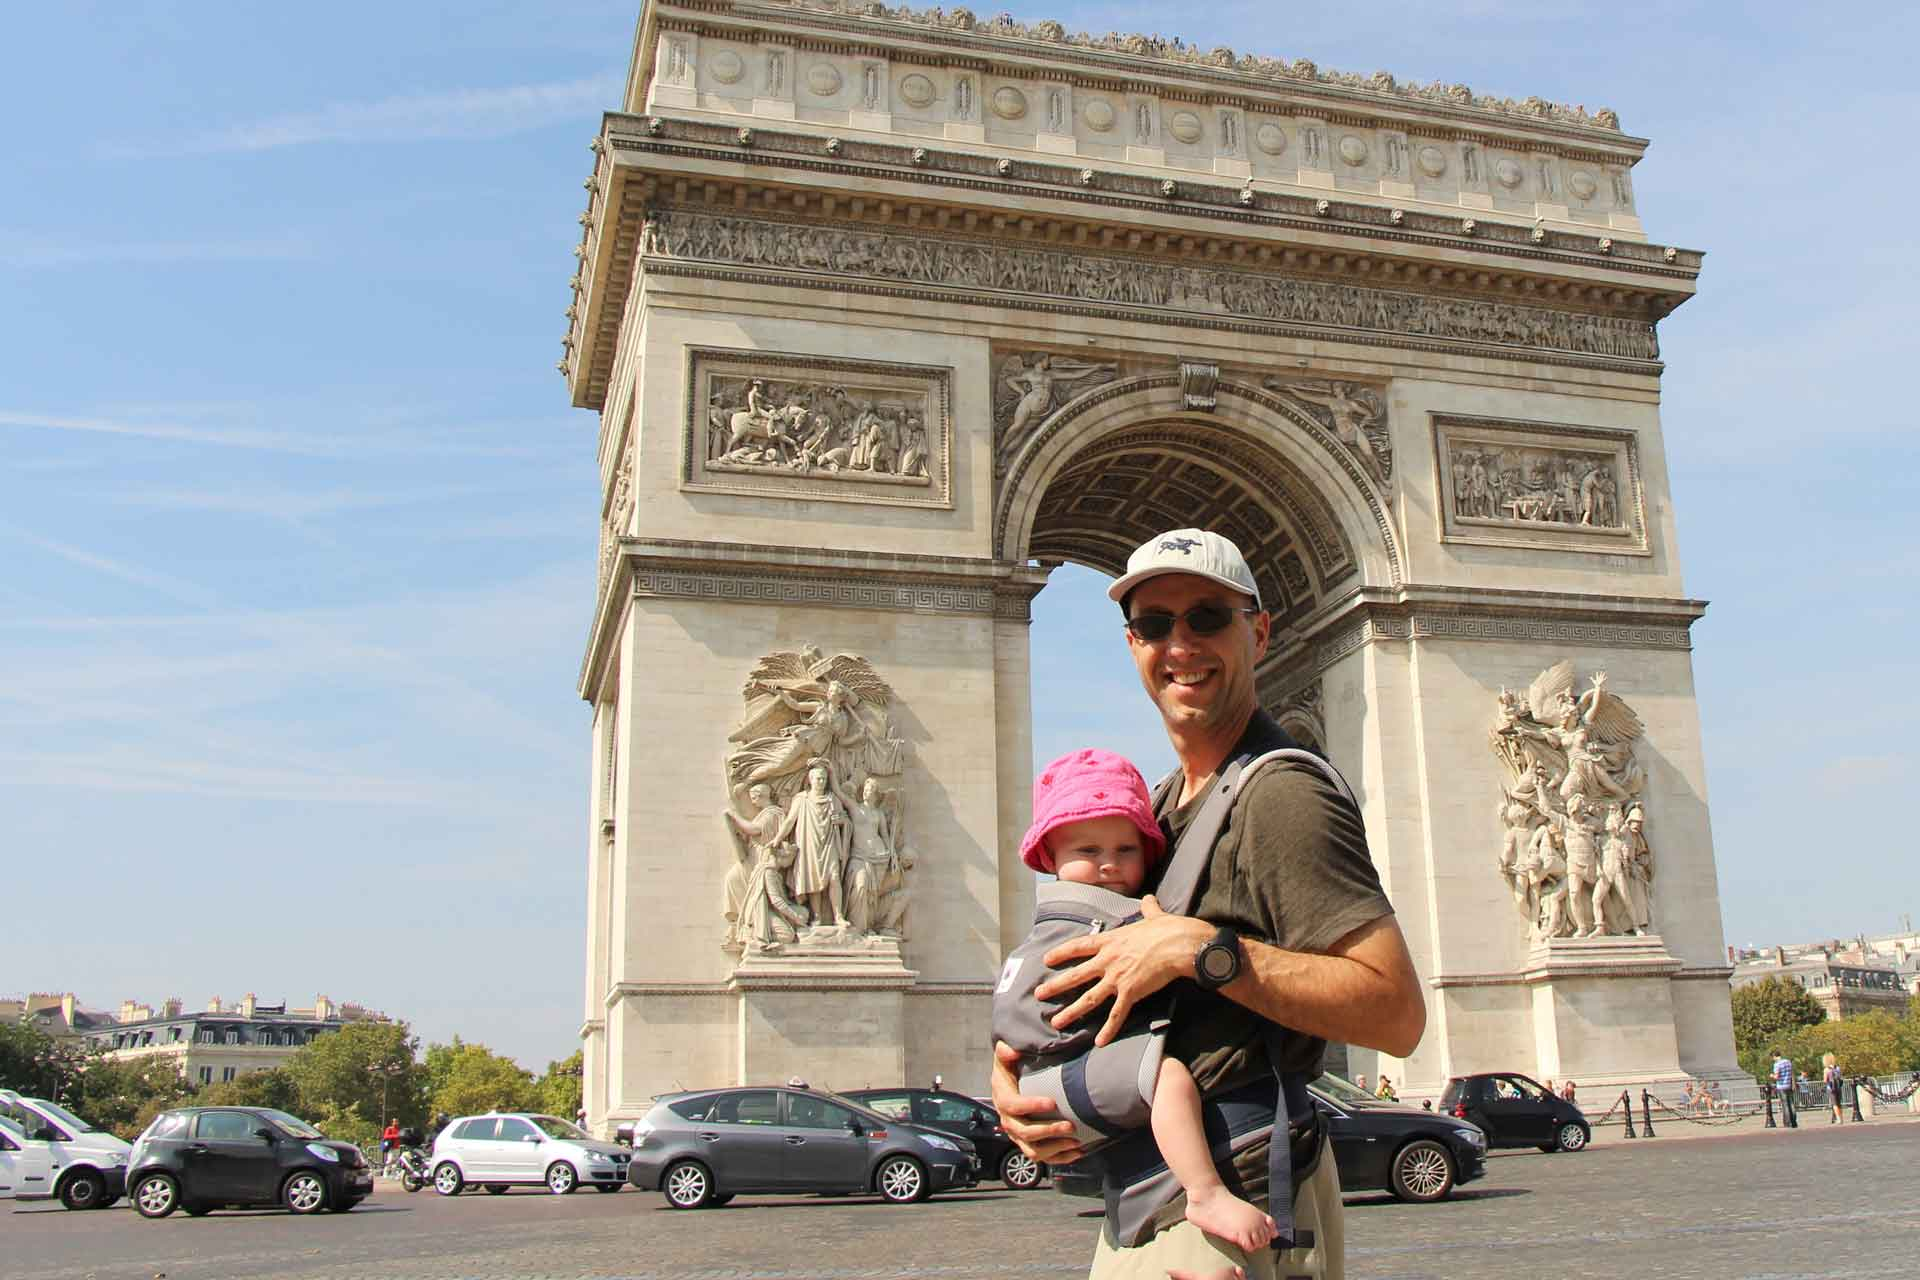 Baby in Carrier for Sightseeing